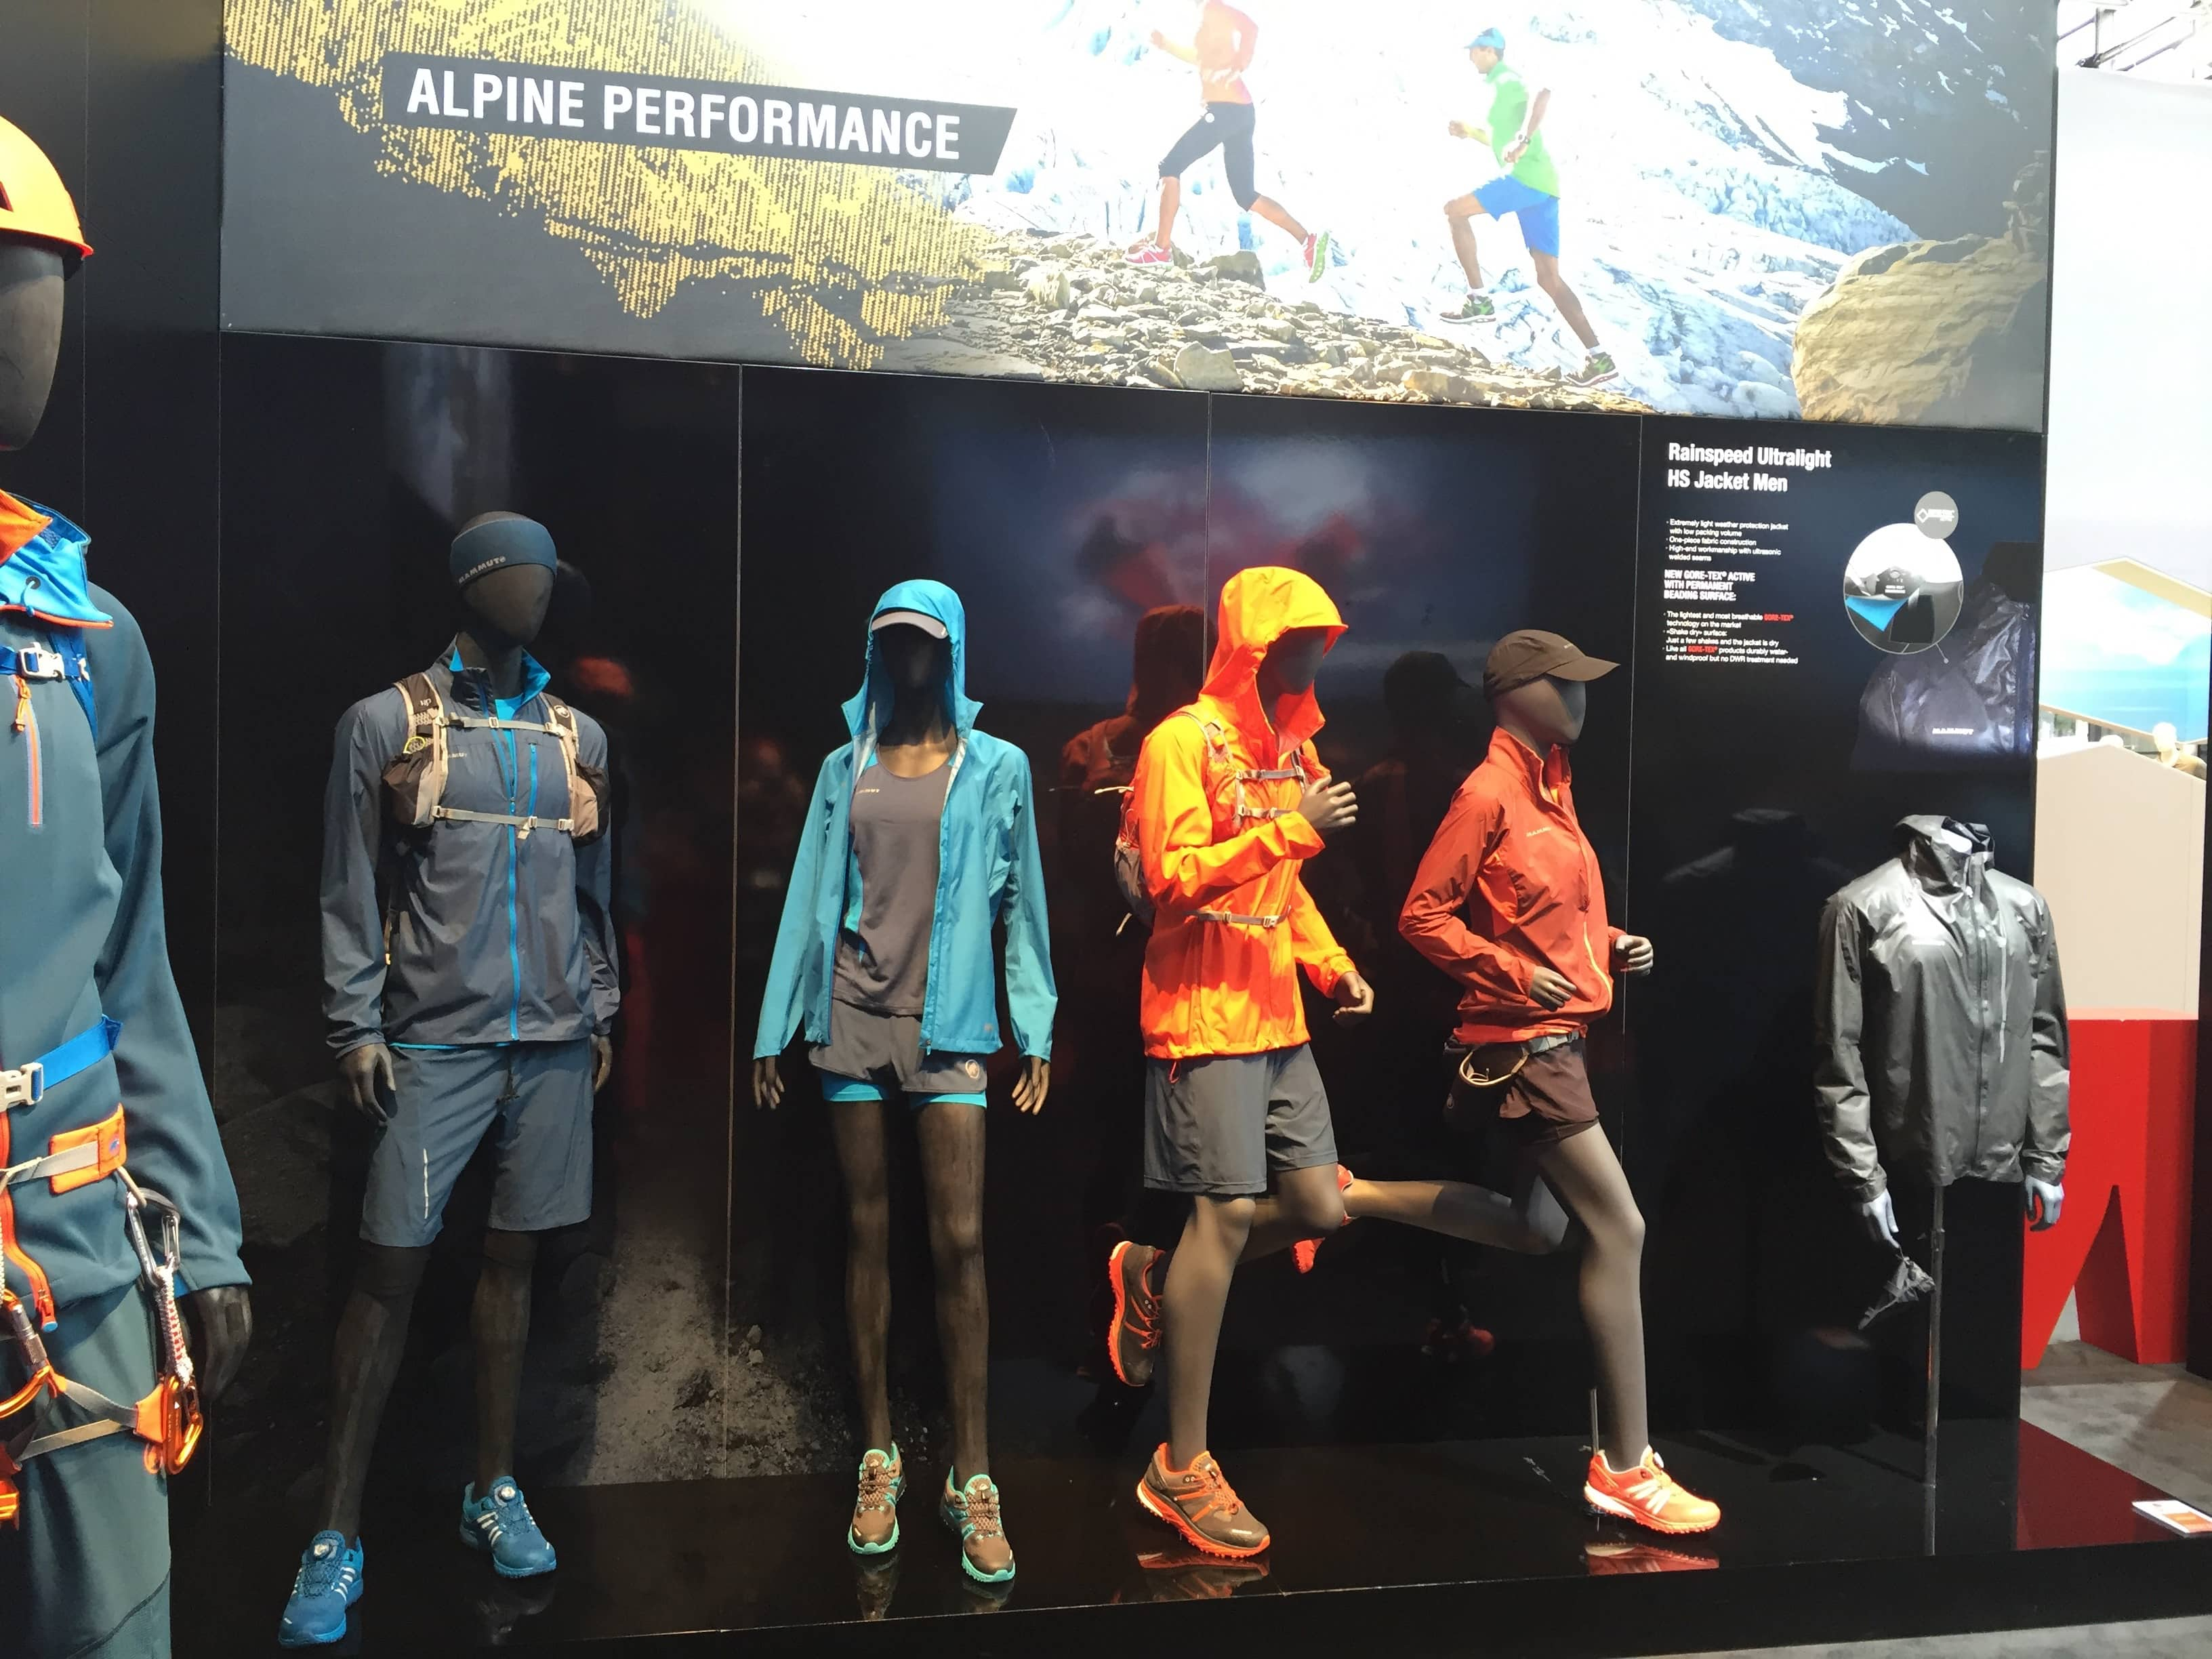 Die Alpine Performance Wear von Mammut.